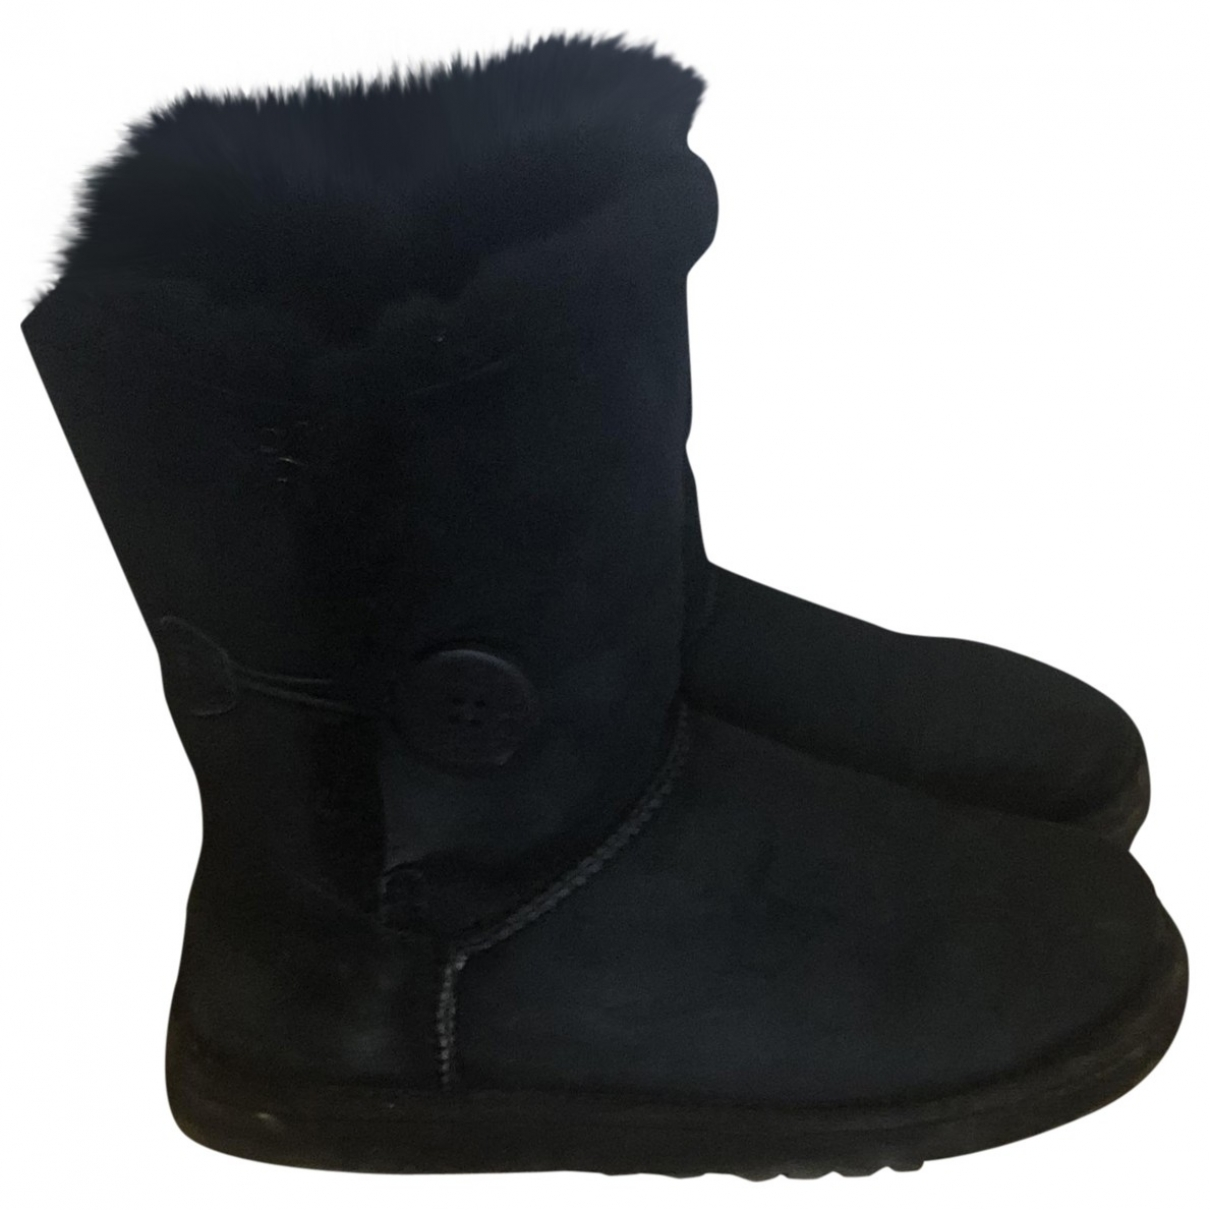 Ugg \N Black Suede Boots for Women 36 EU